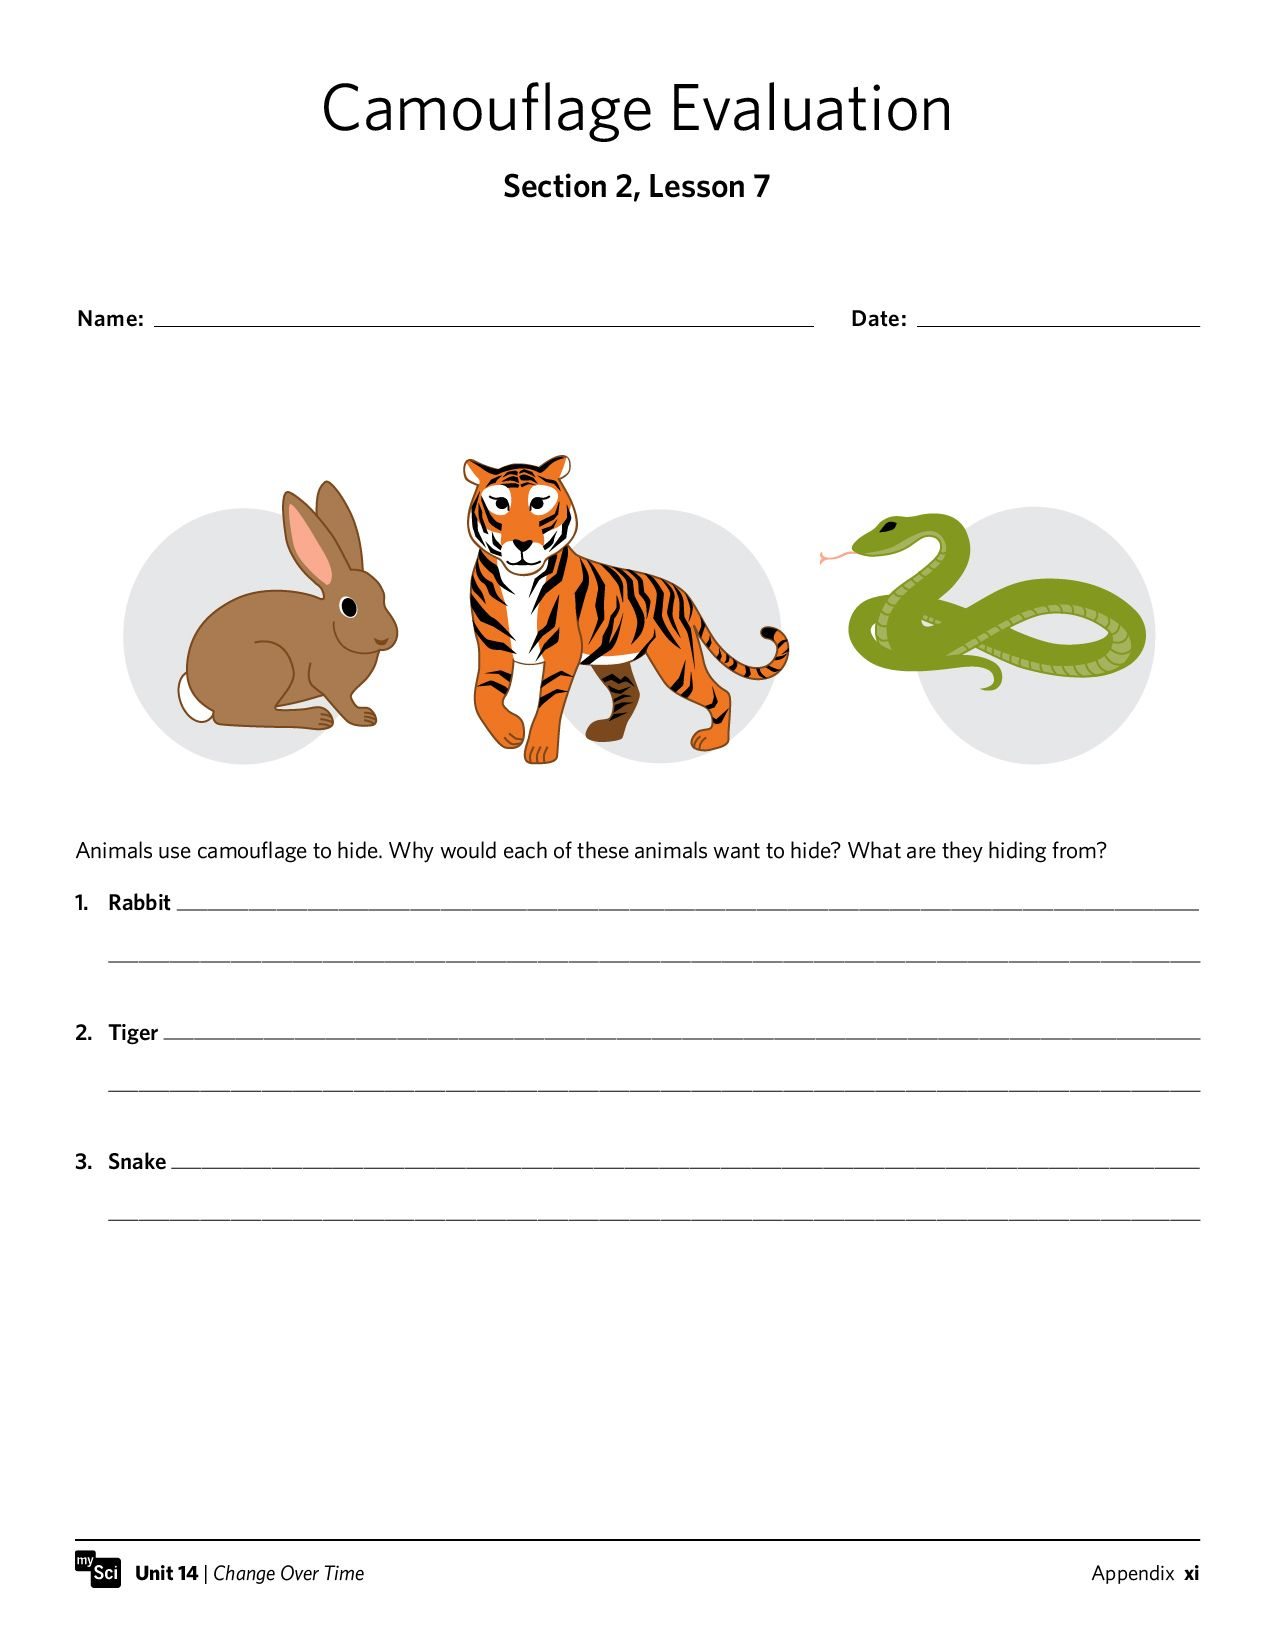 Worksheets Animal Adaptations Worksheets mysci unit 14 isp animal adaptations worksheets and earth science camouflage worksheet free handout animals teaching